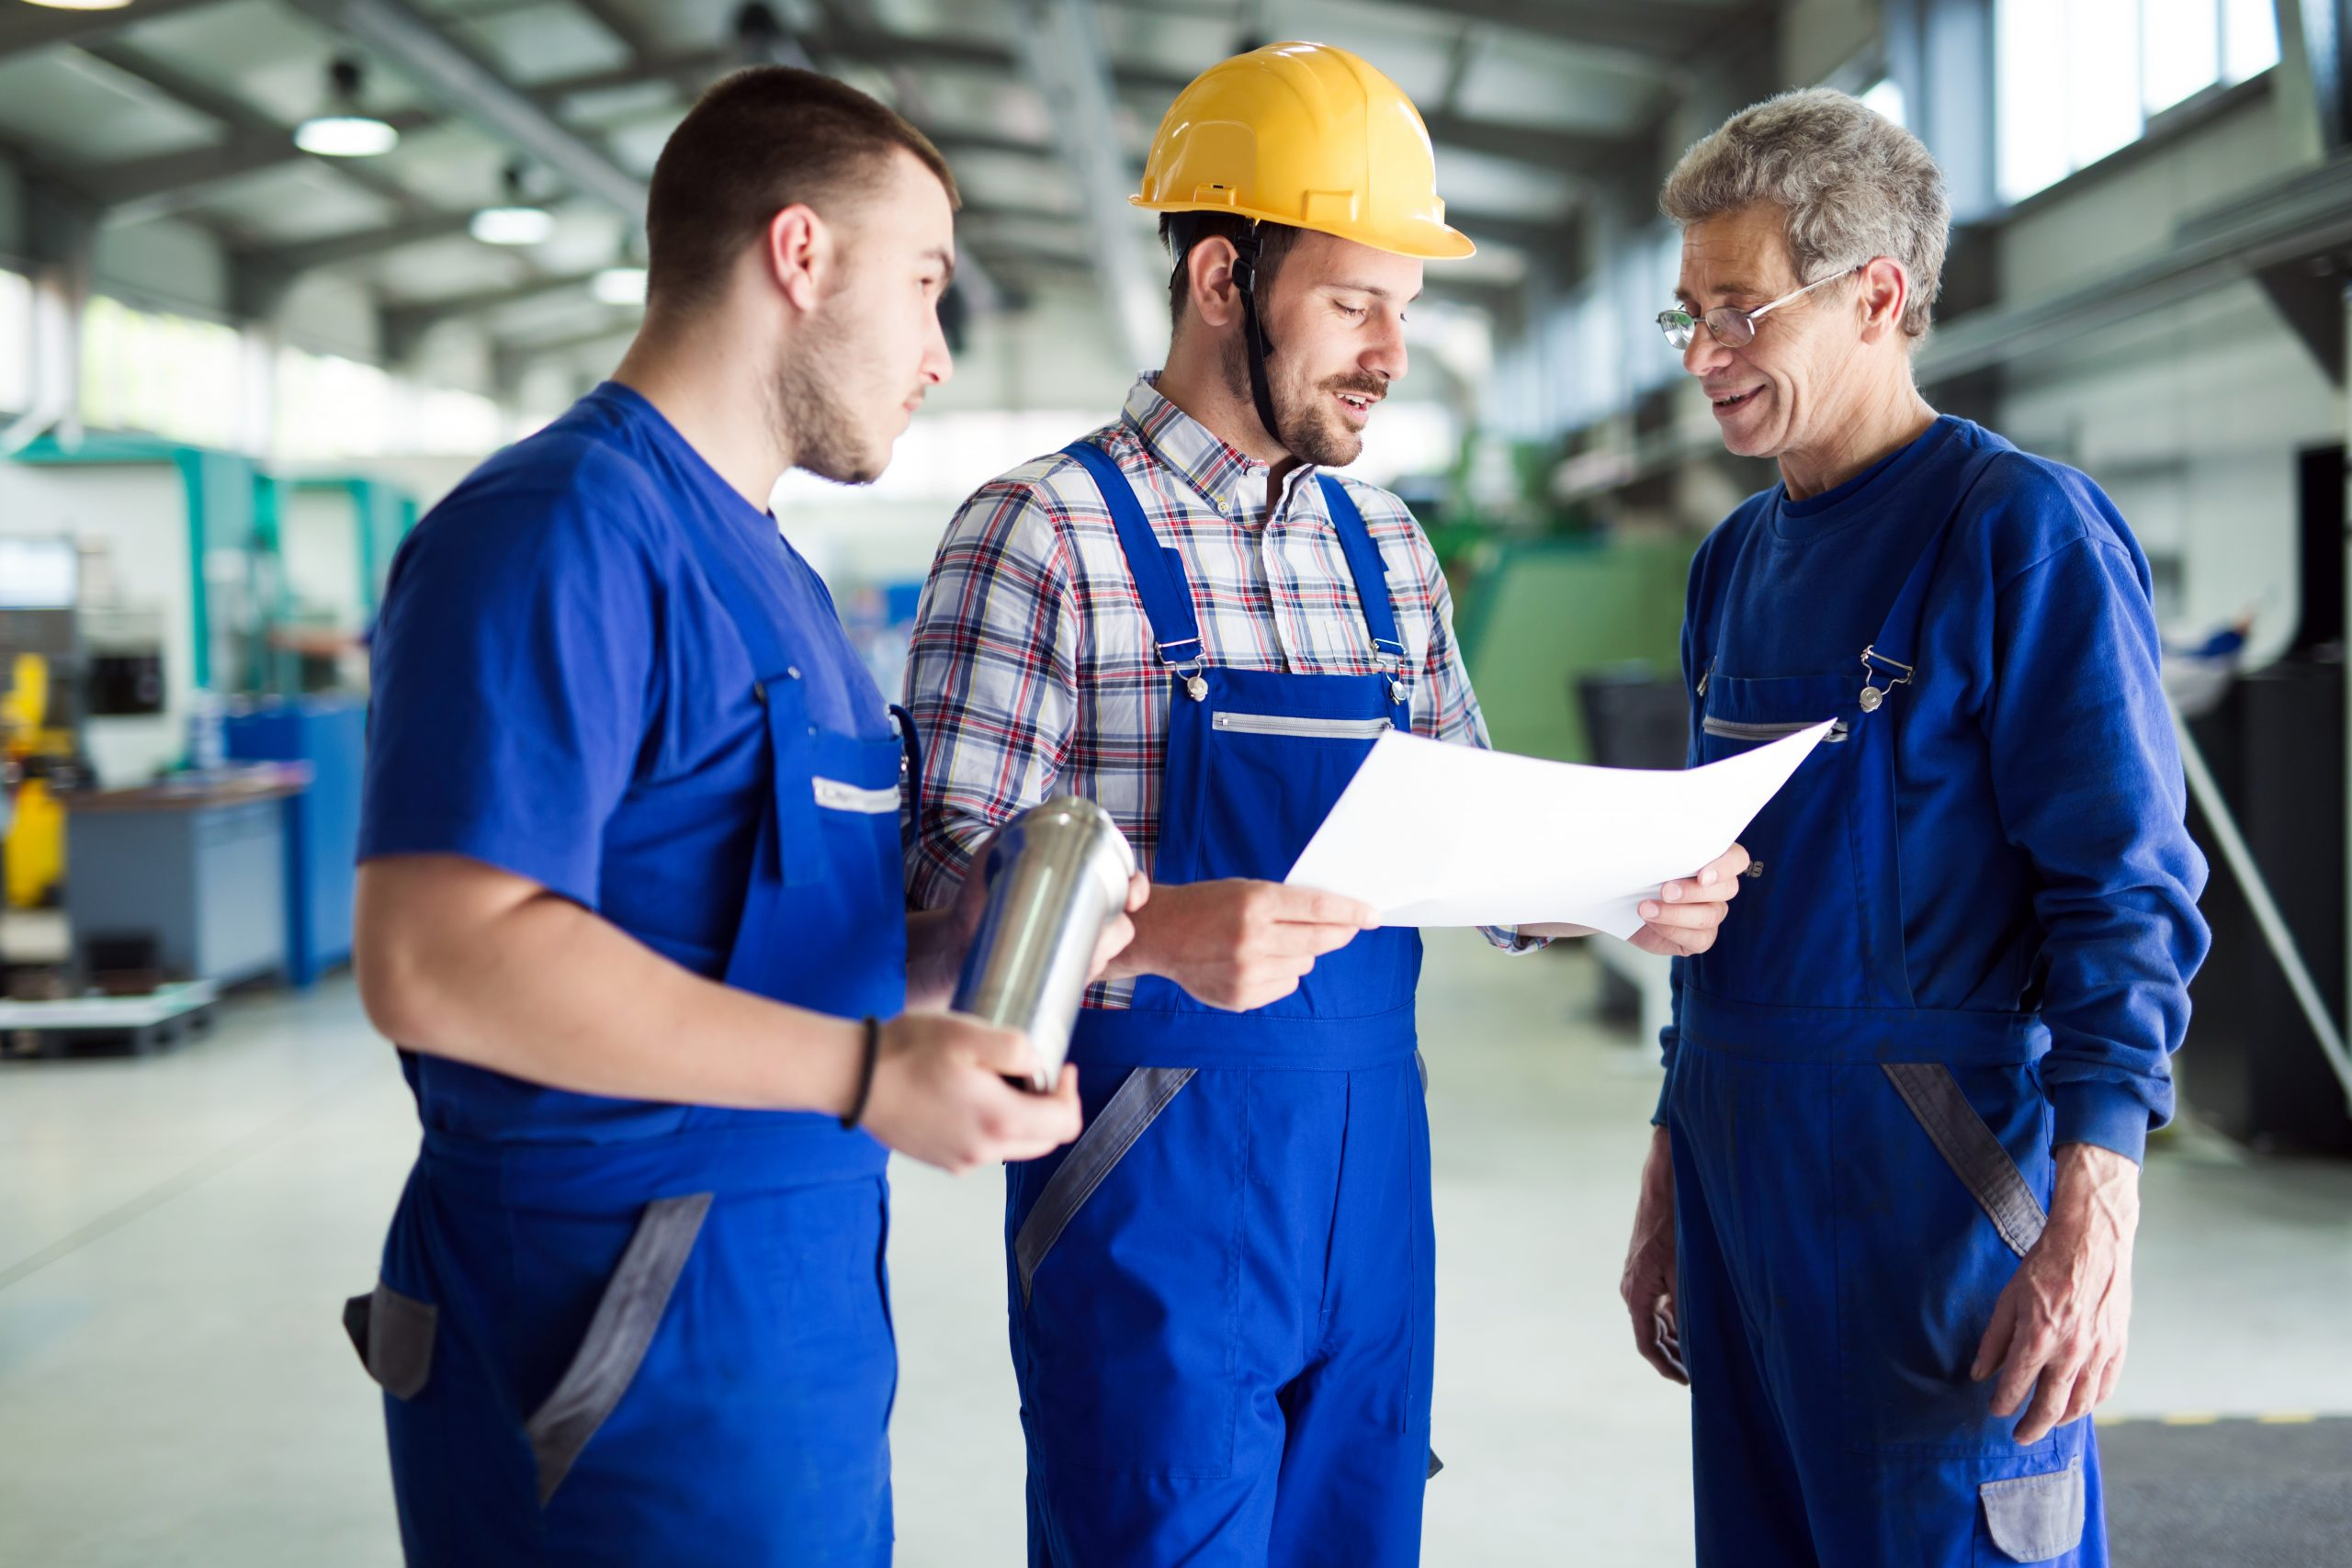 team-of-engineers-having-discussion-in-factory-GG8A8BU-scaled.jpg